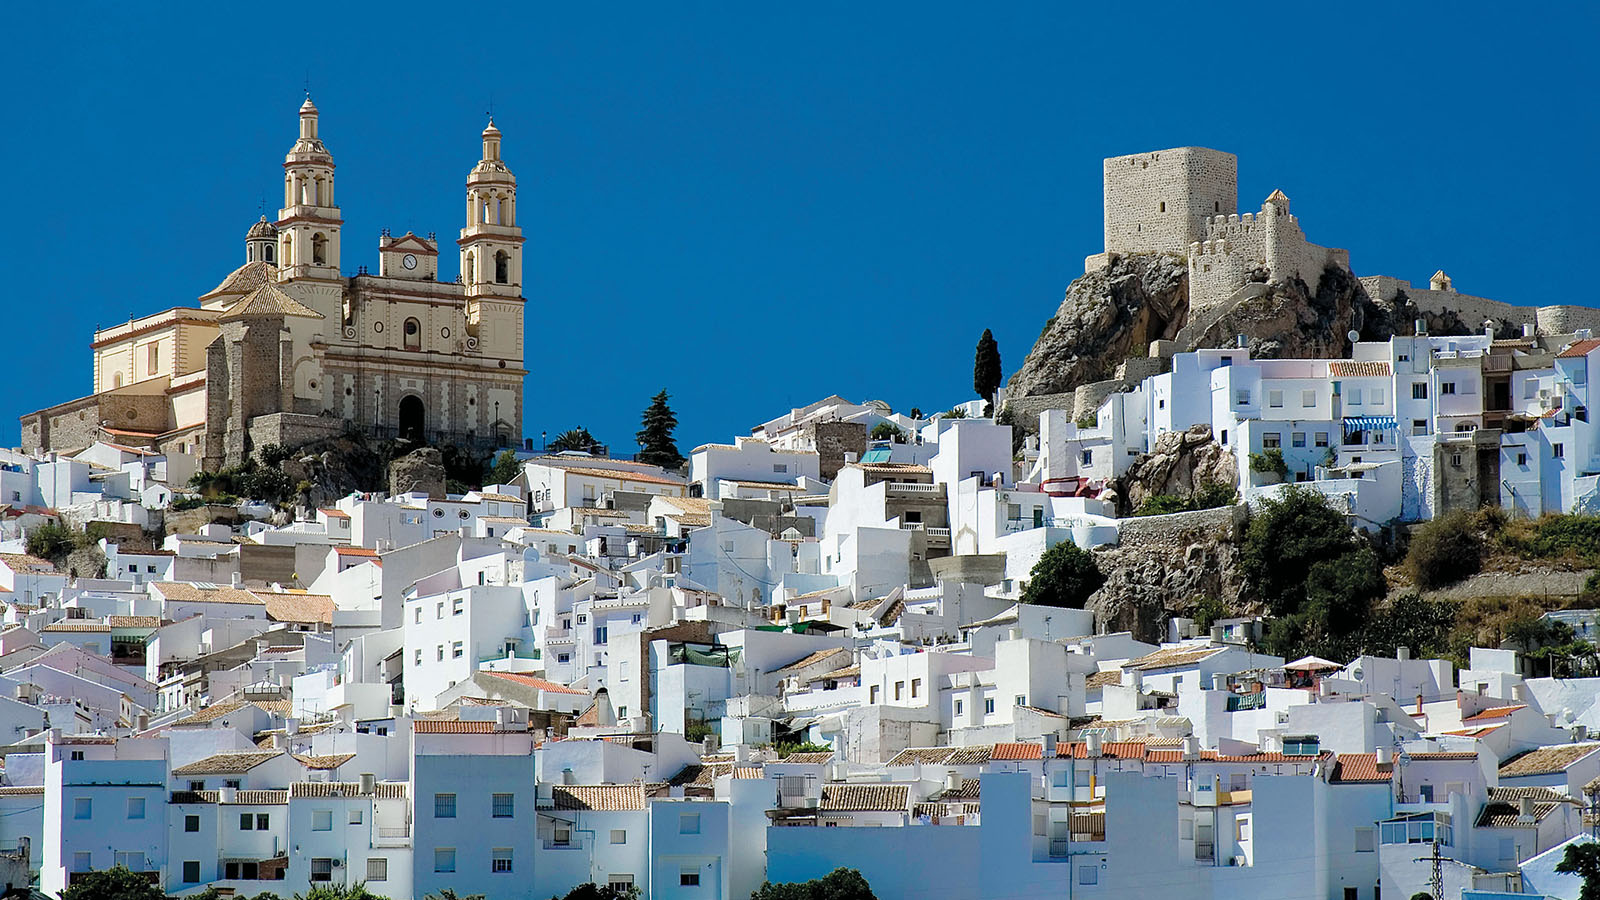 Buildings in Andalucia, Spain